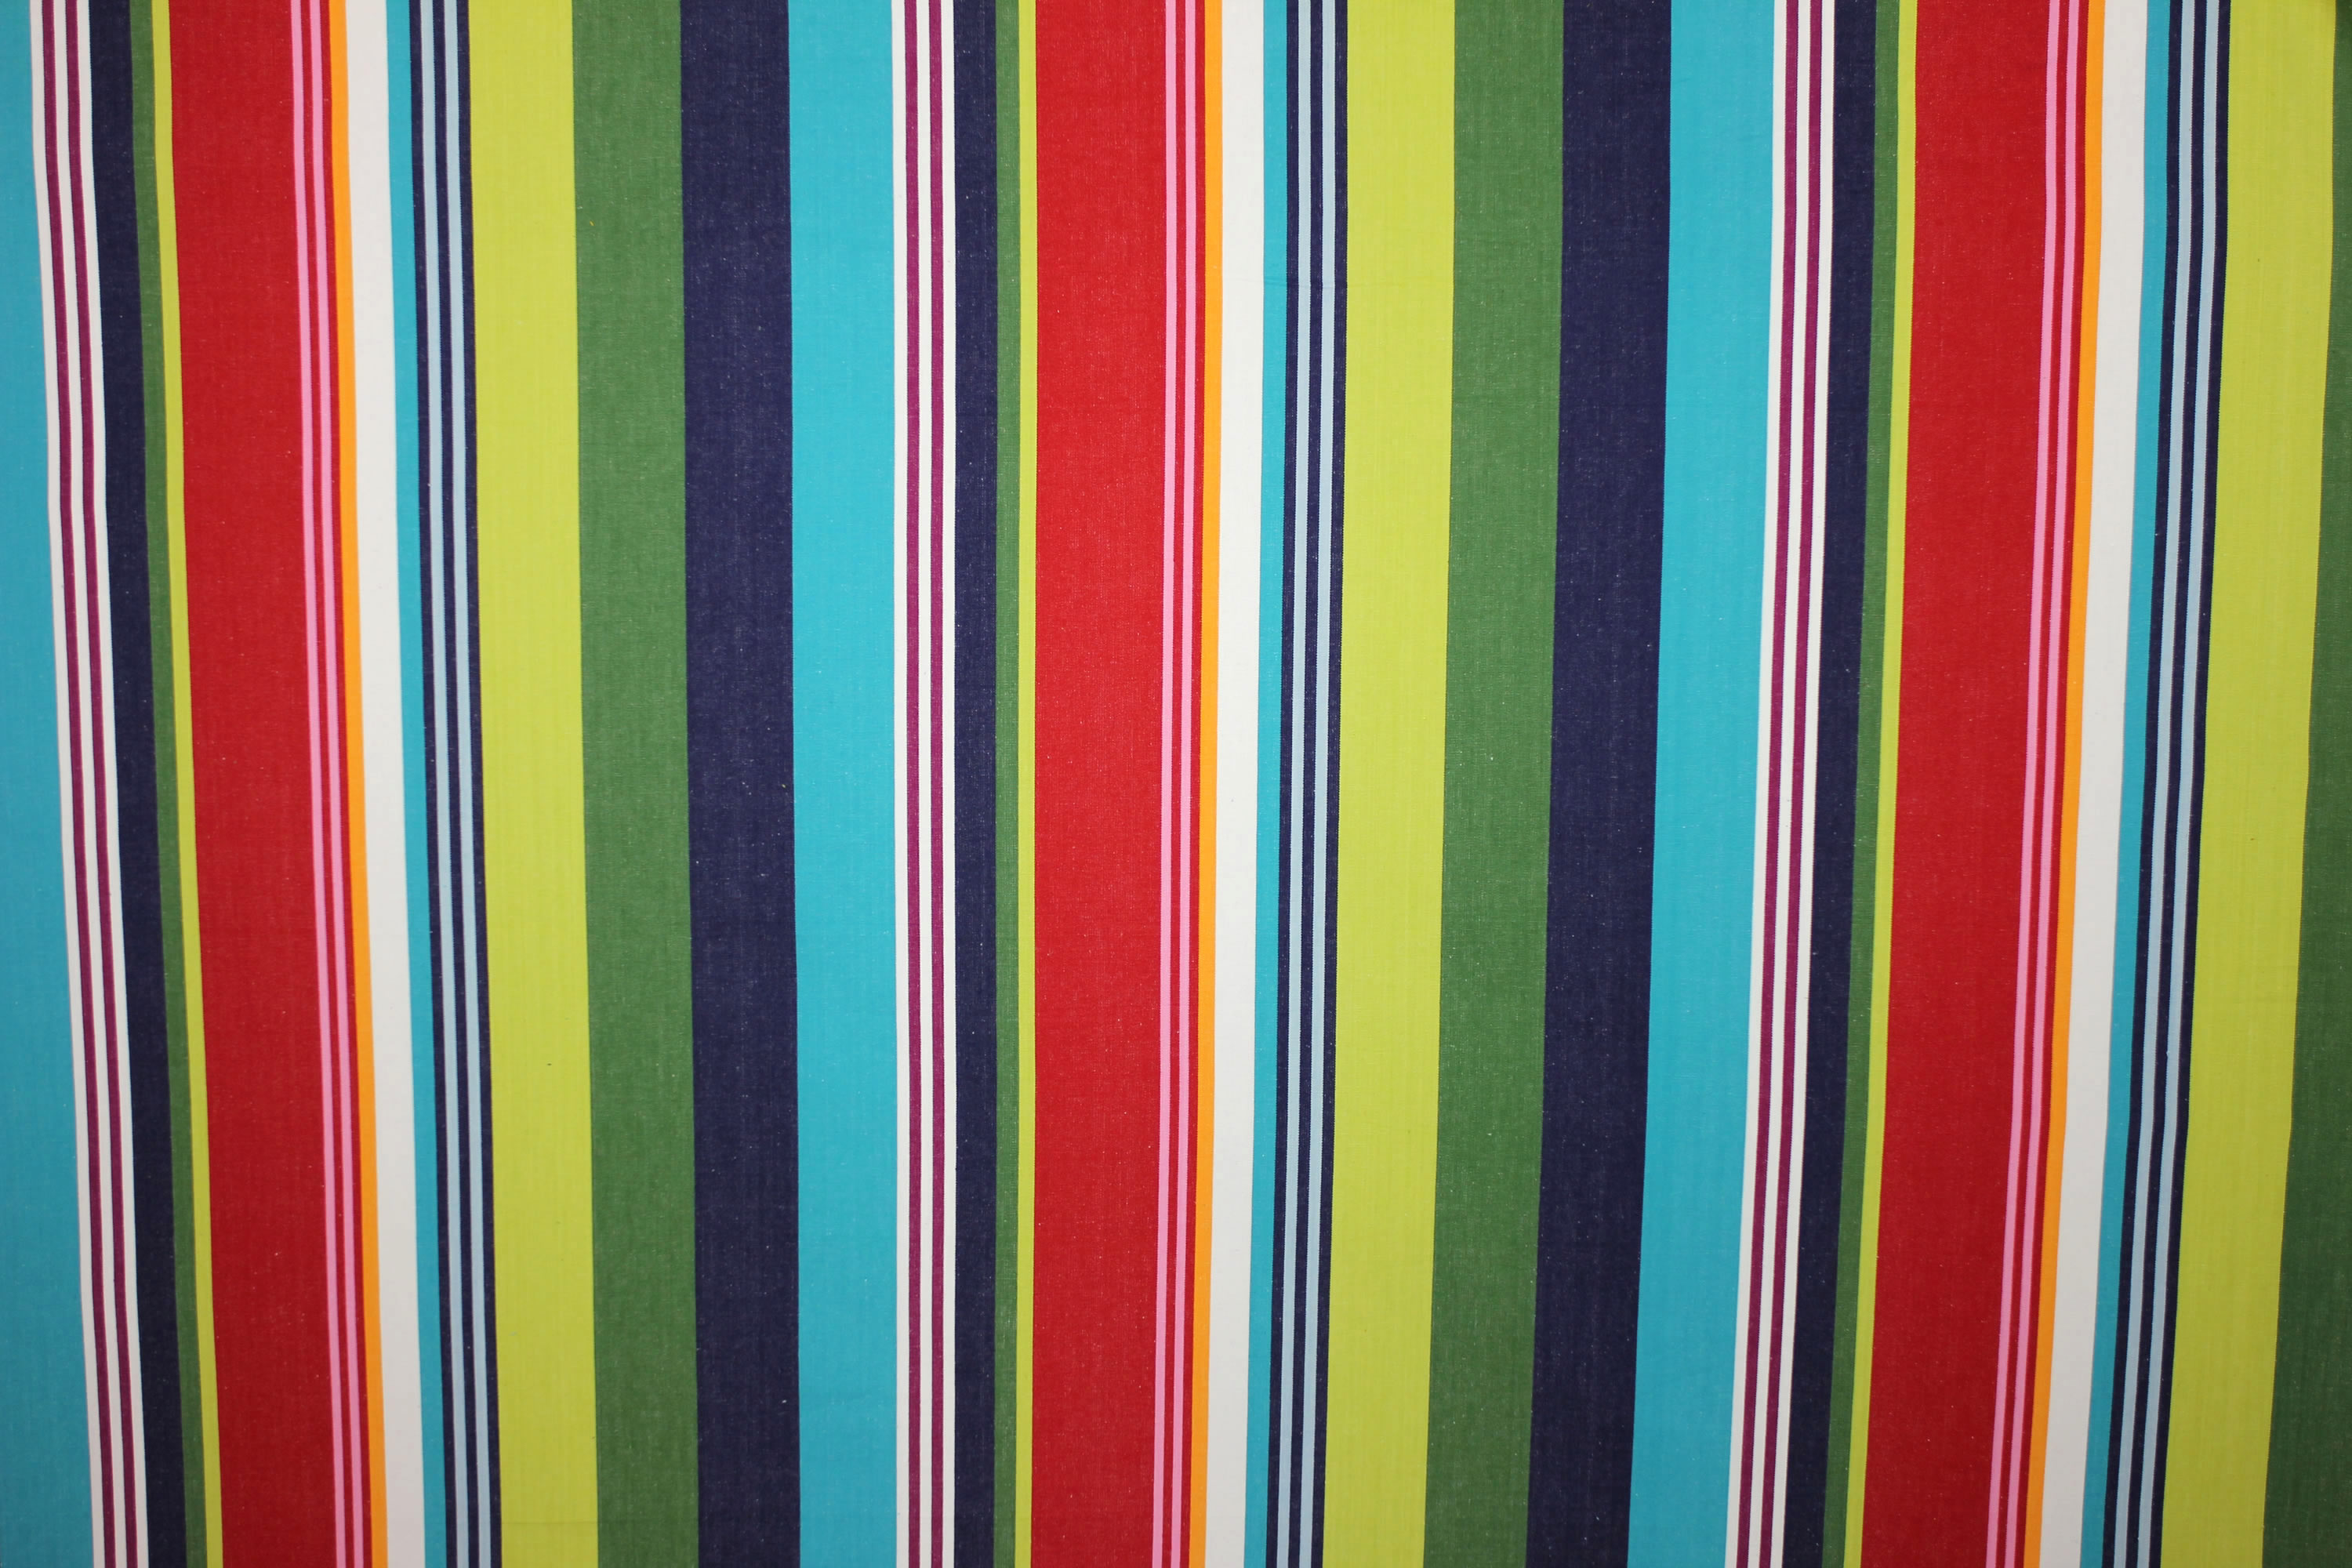 Green Striped Fabrics | Stripe Cotton Fabrics | Striped Curtain Fabrics | Upholstery Fabrics  Wakeboarding Stripes